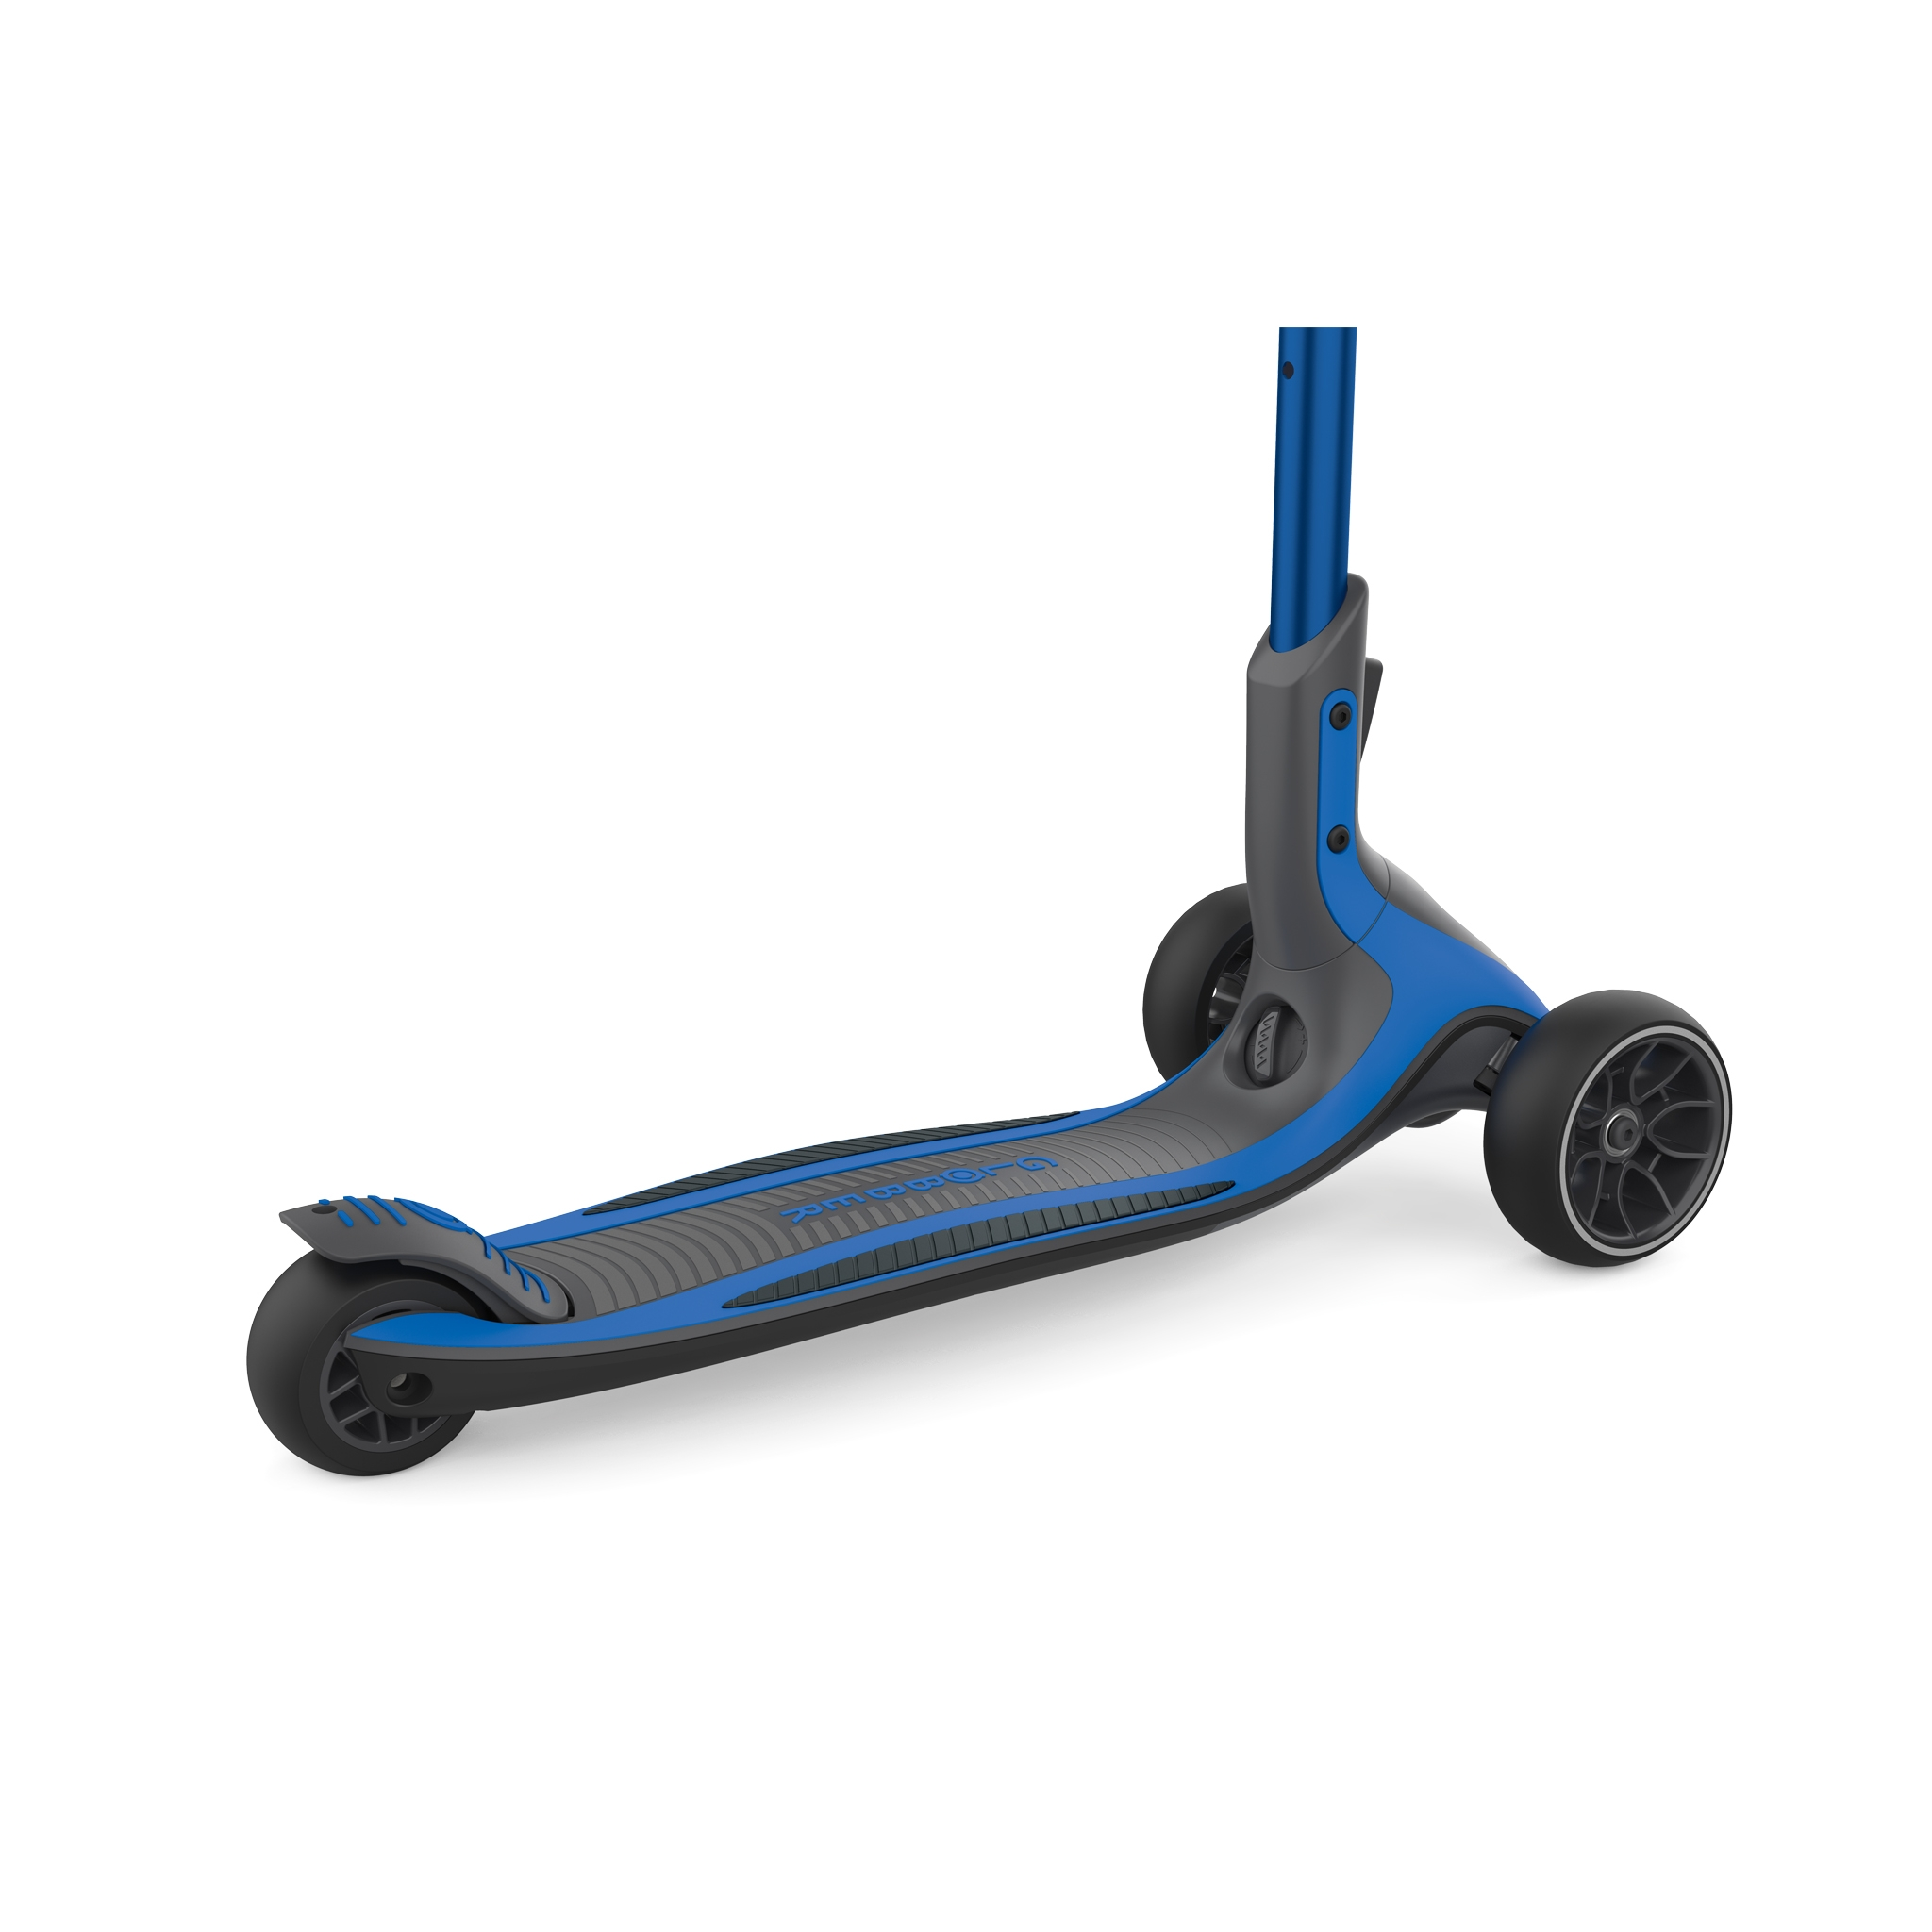 3 wheel foldable scooter for kids, teens and adults - Globber ULTIMUM 6